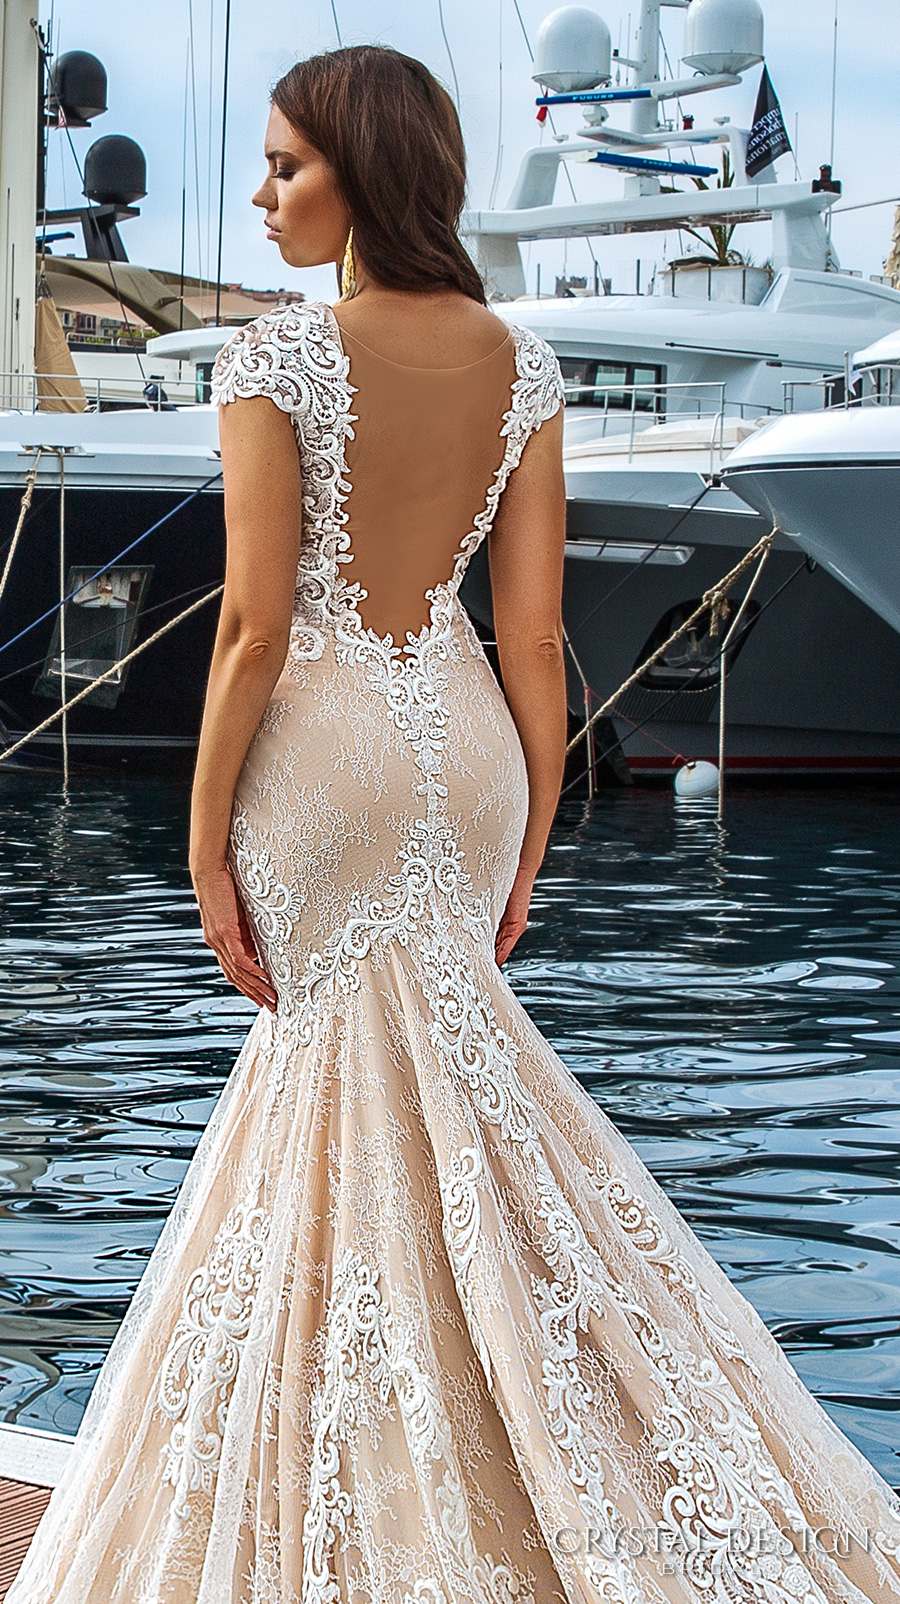 crystal design 2017 bridal cap sleeves deep plunging v neck full embellishment ivory color sexy elegant fit and flare mermaid wedding dress low back royal long train (marchesa) zbv